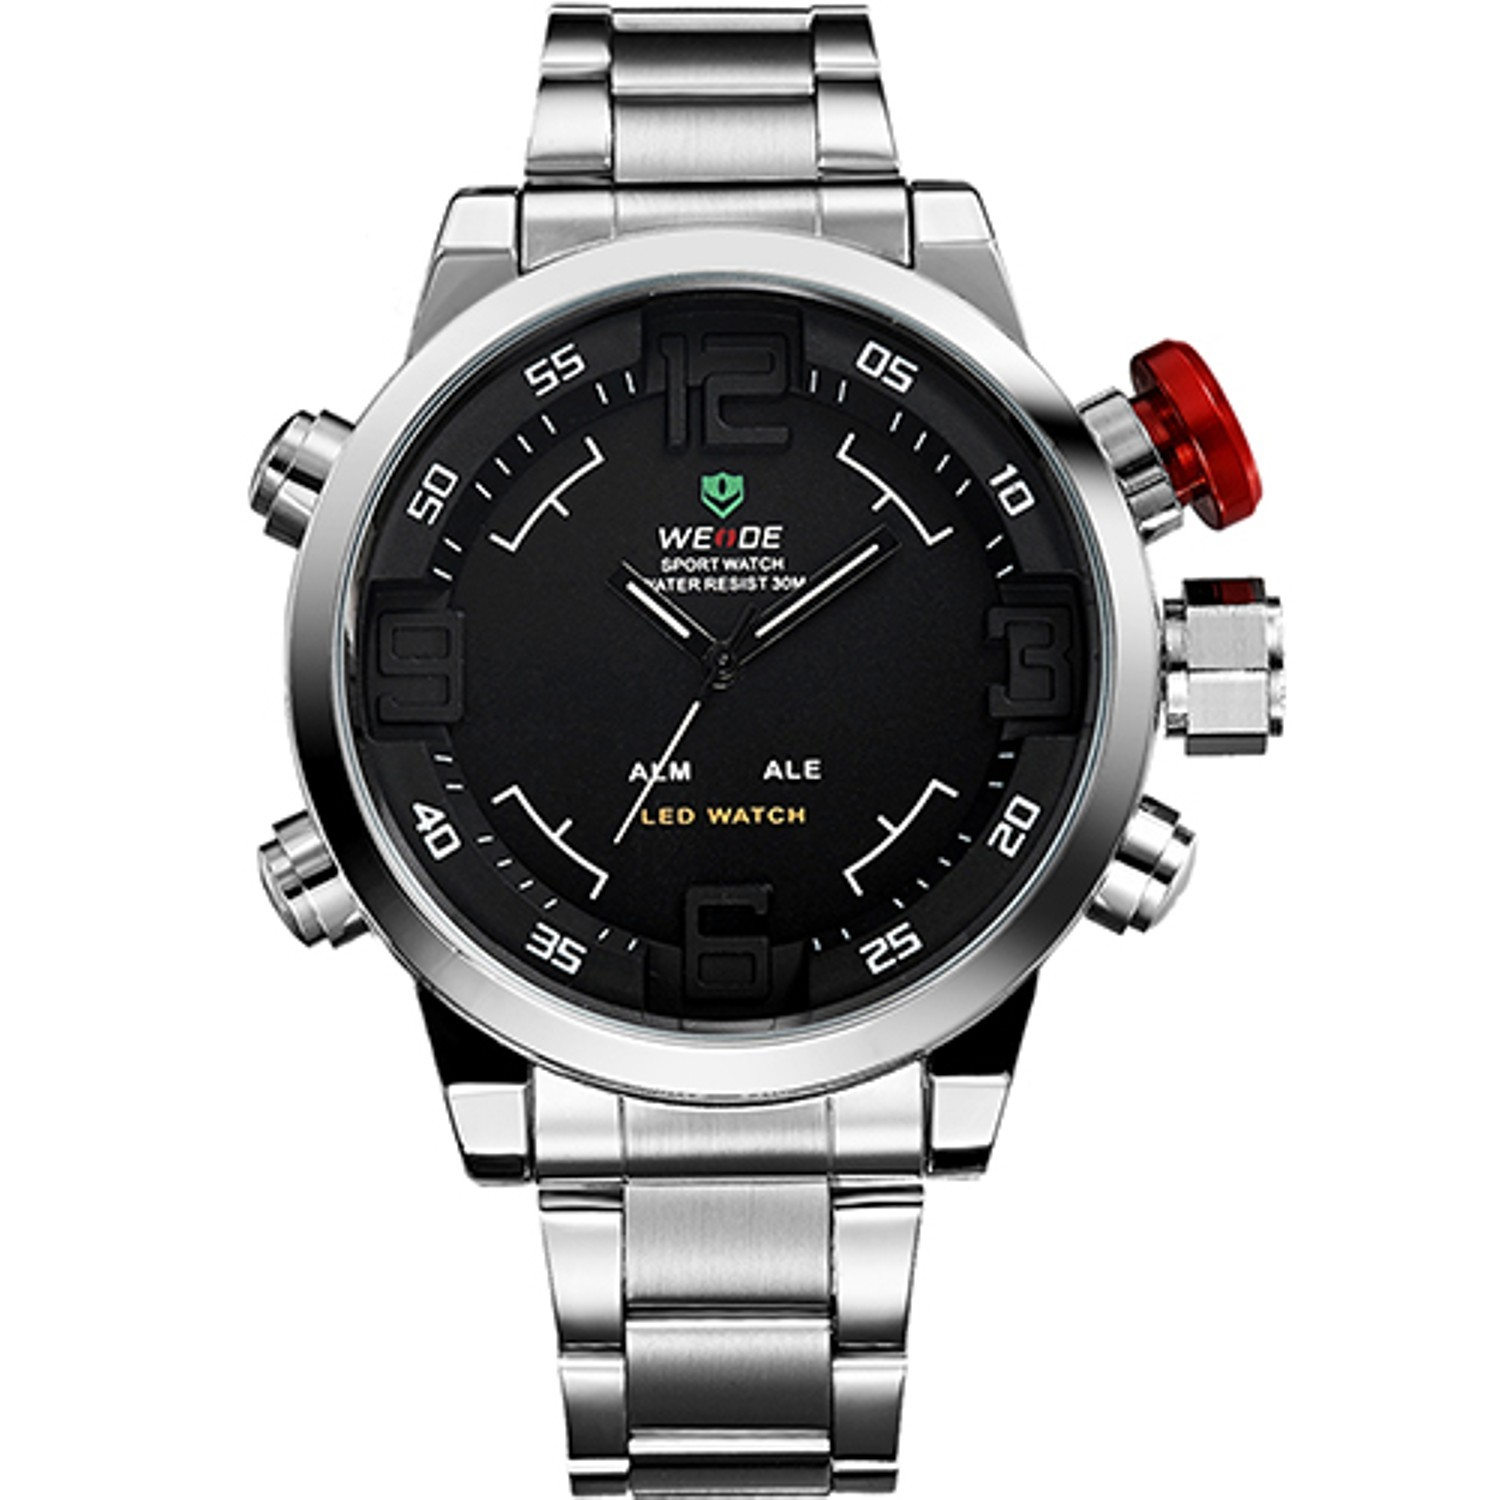 WEIDE-New-Watch-Men-s-Watch-Military-Watches-Sports-Date-LCD-Digital-Analog-Diaplay-Stainless-Steel_1500x1500_STRETCH_Black Dial.jpg